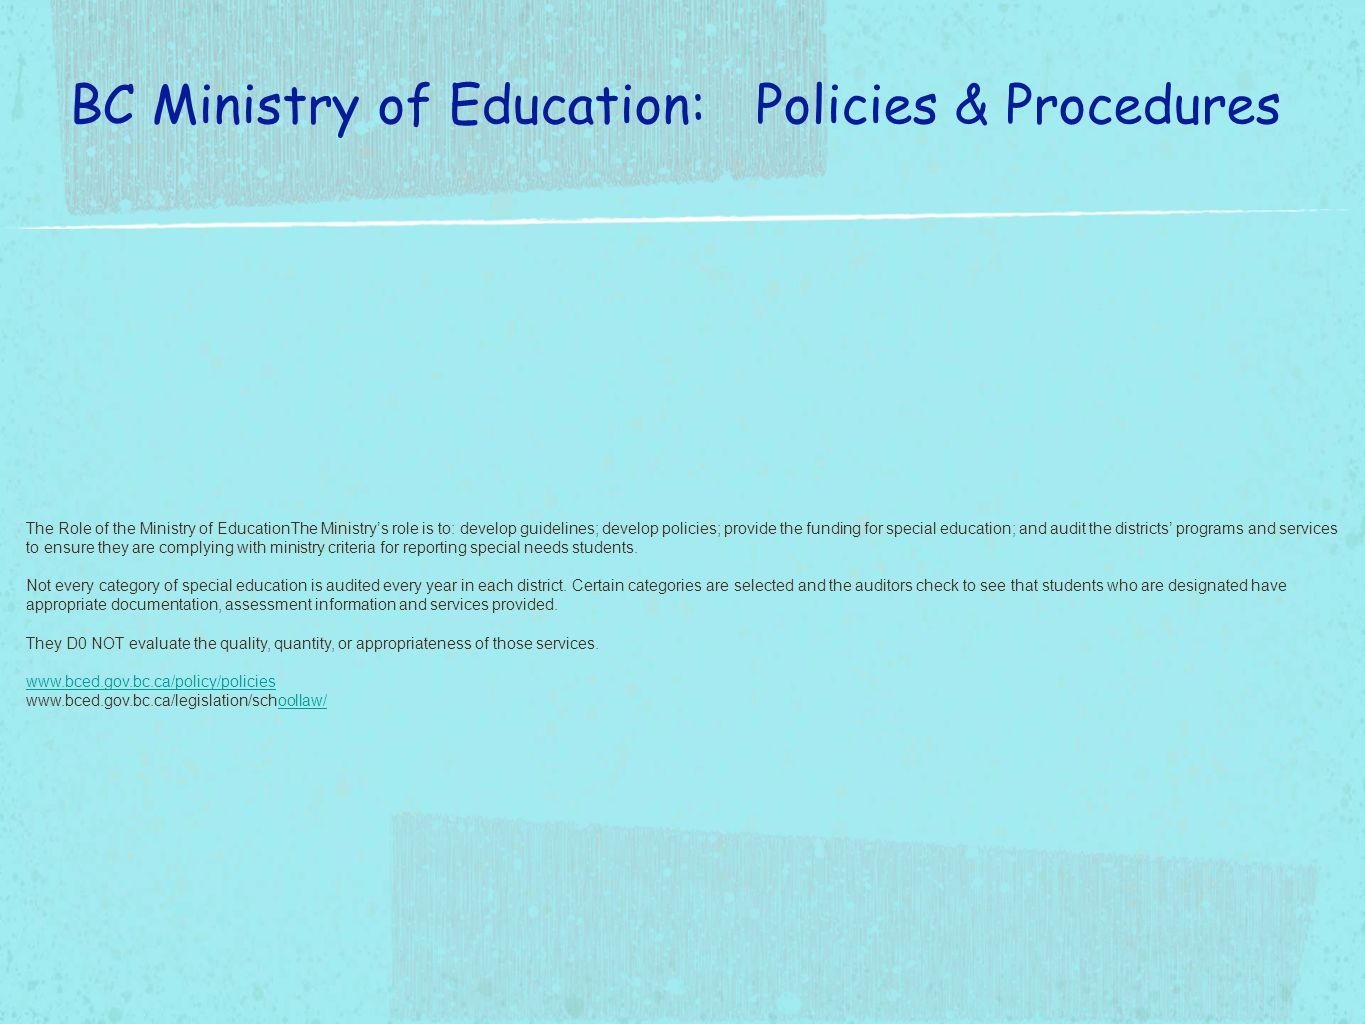 The Role of the Ministry of EducationThe Ministry's role is to: develop guidelines; develop policies; provide the funding for special education; and audit the districts' programs and services to ensure they are complying with ministry criteria for reporting special needs students.